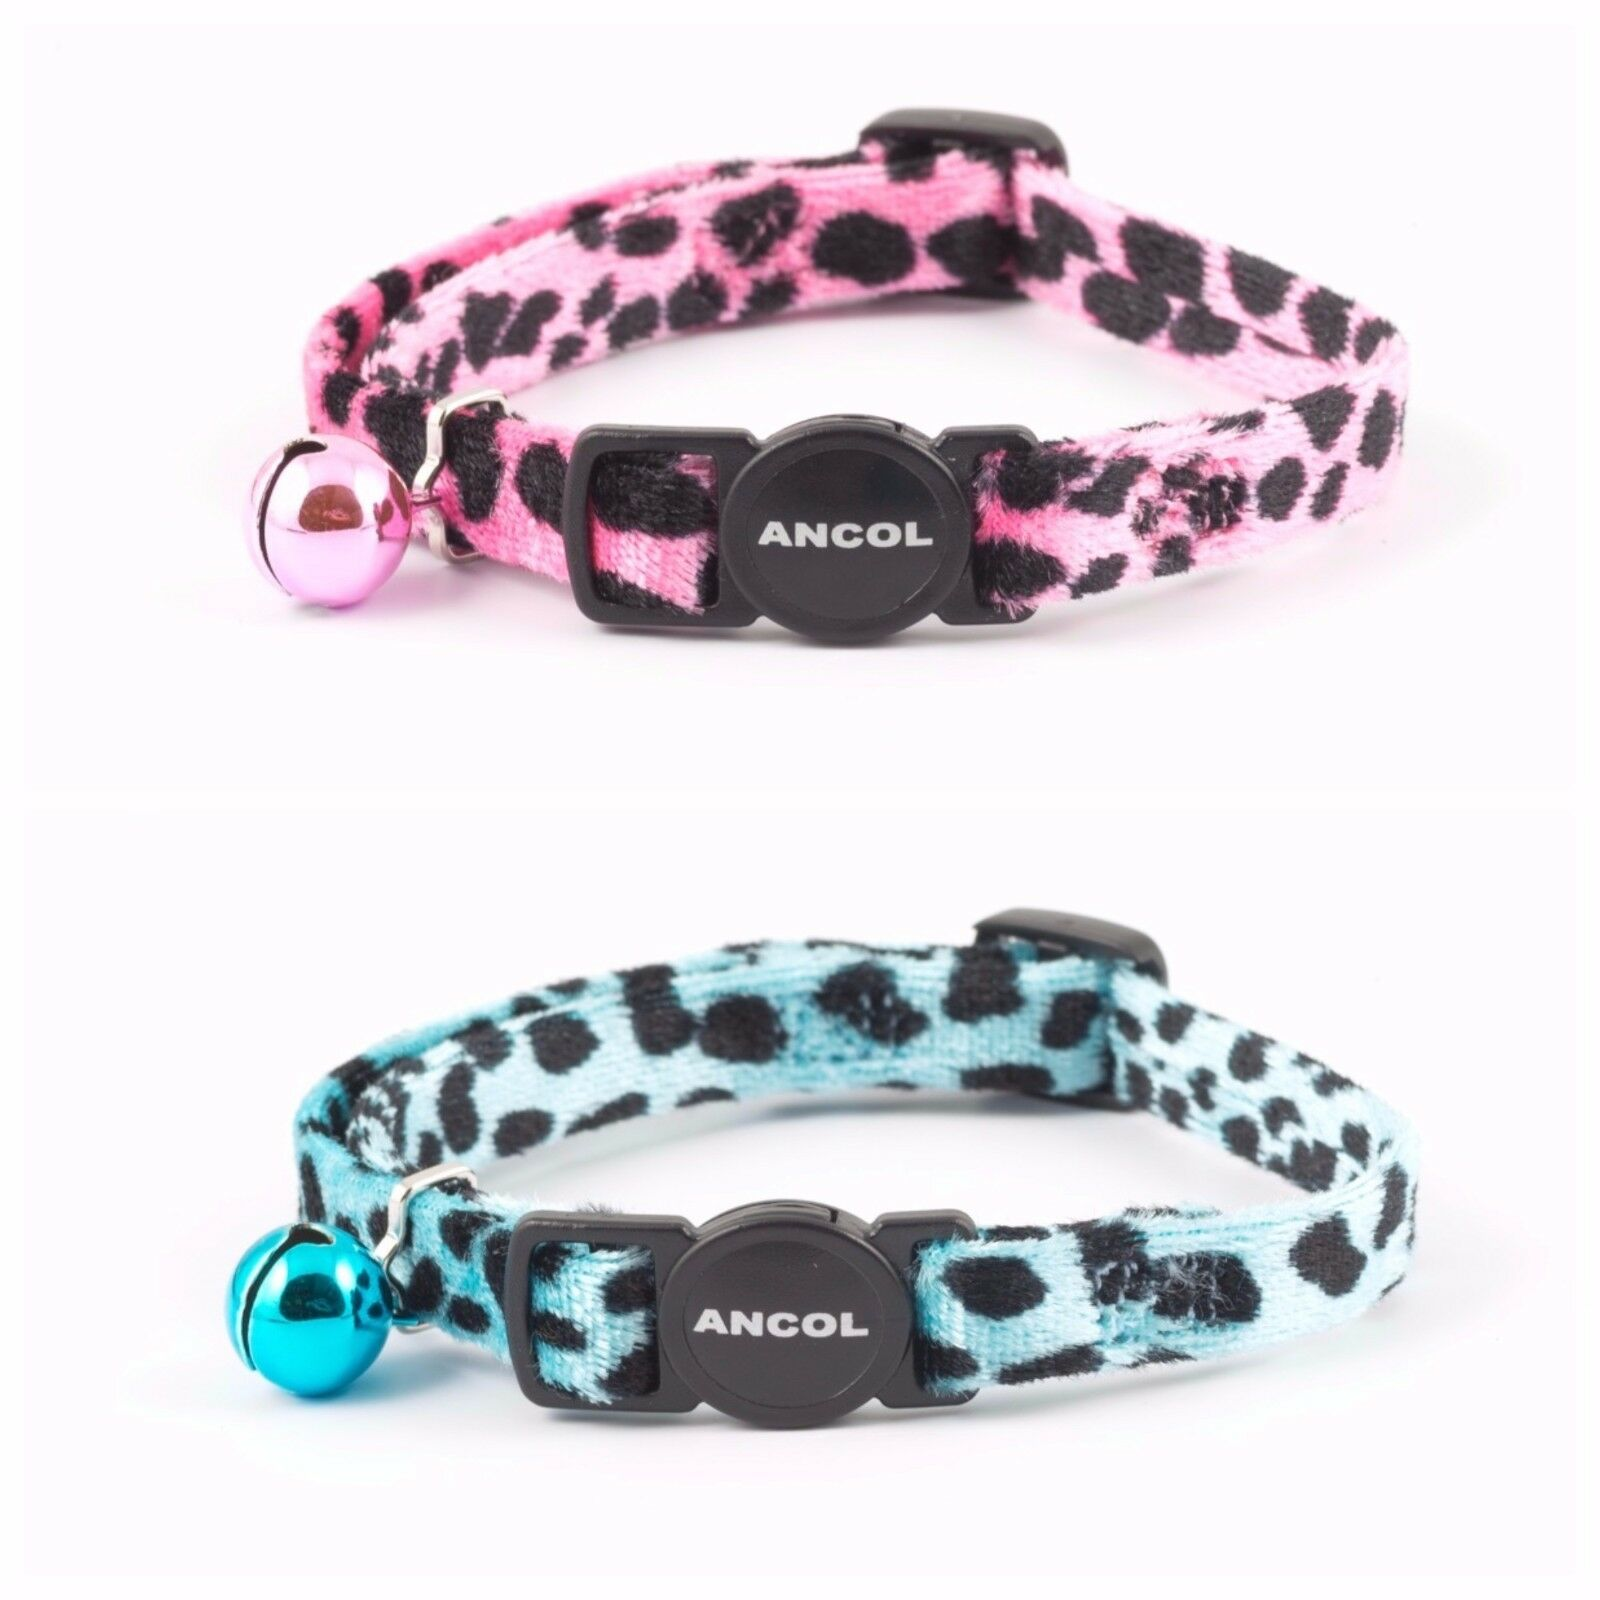 ANCOL VELVET LEOPARD PRINT CAT COLLAR with or without Engraved ID Tag